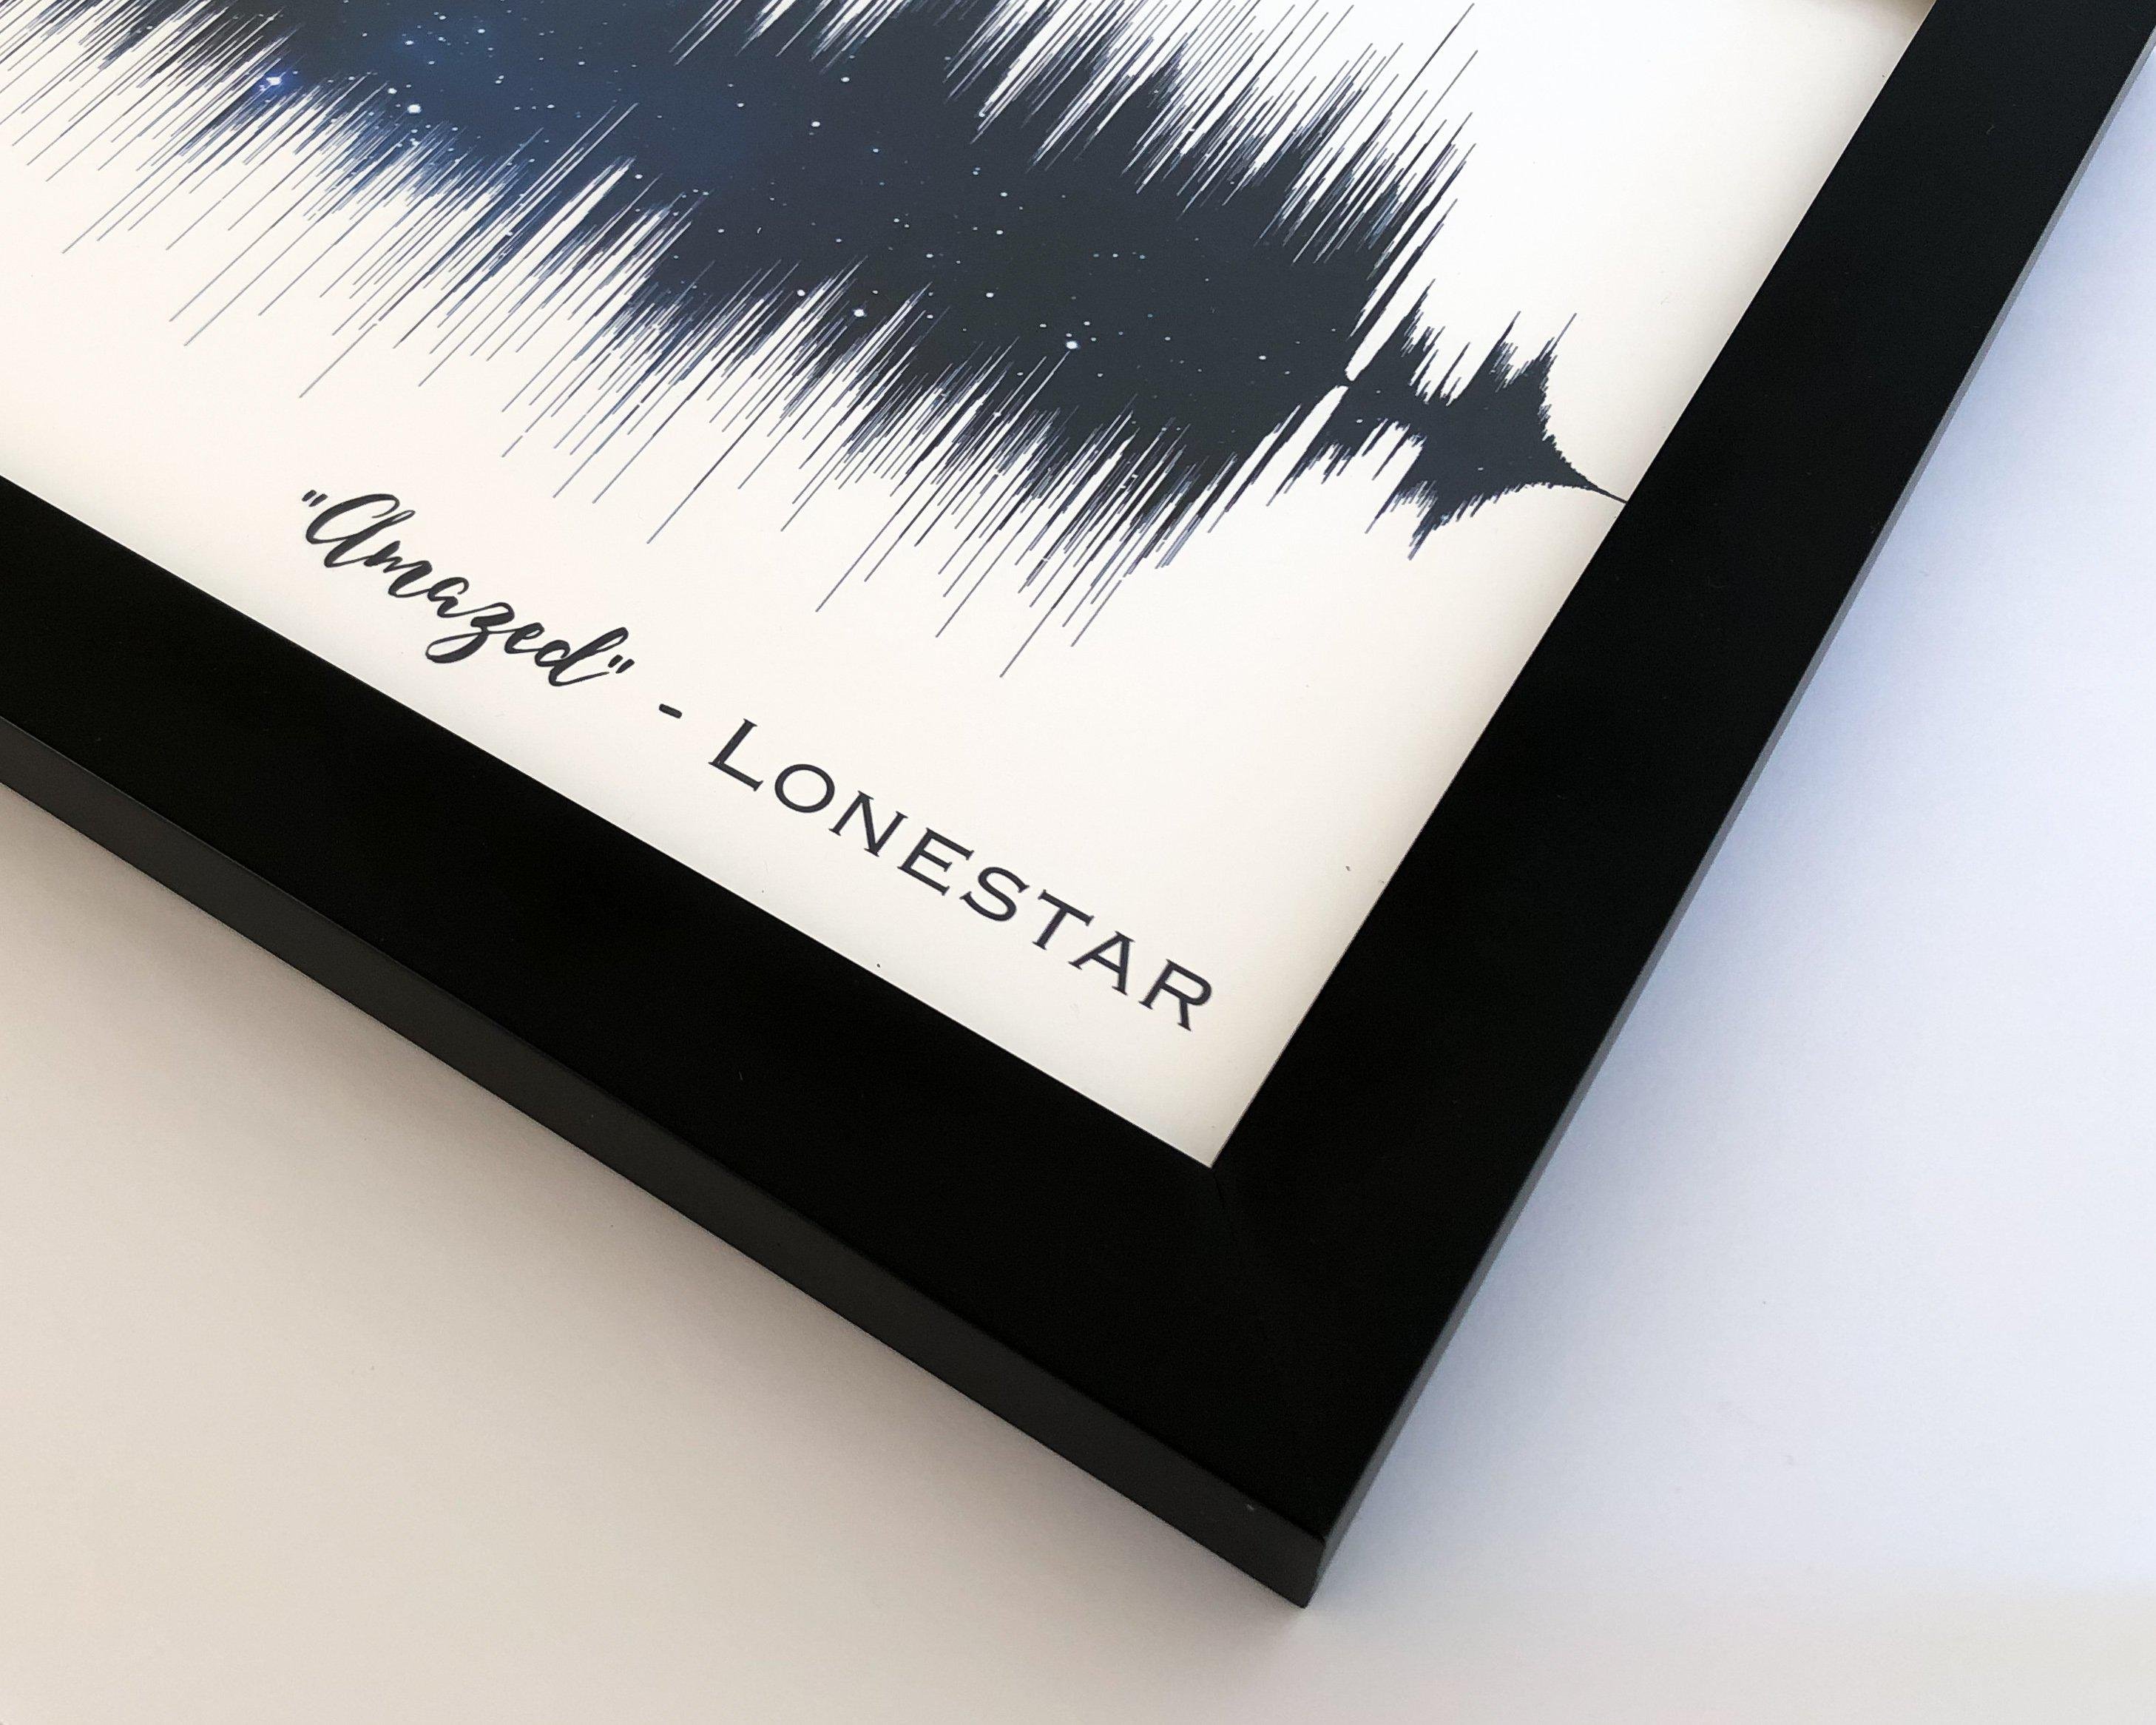 Song Sound Wave Art Framed Soundwave Art Guitar Player Gift Musician Gifts - Artsy Voiceprint